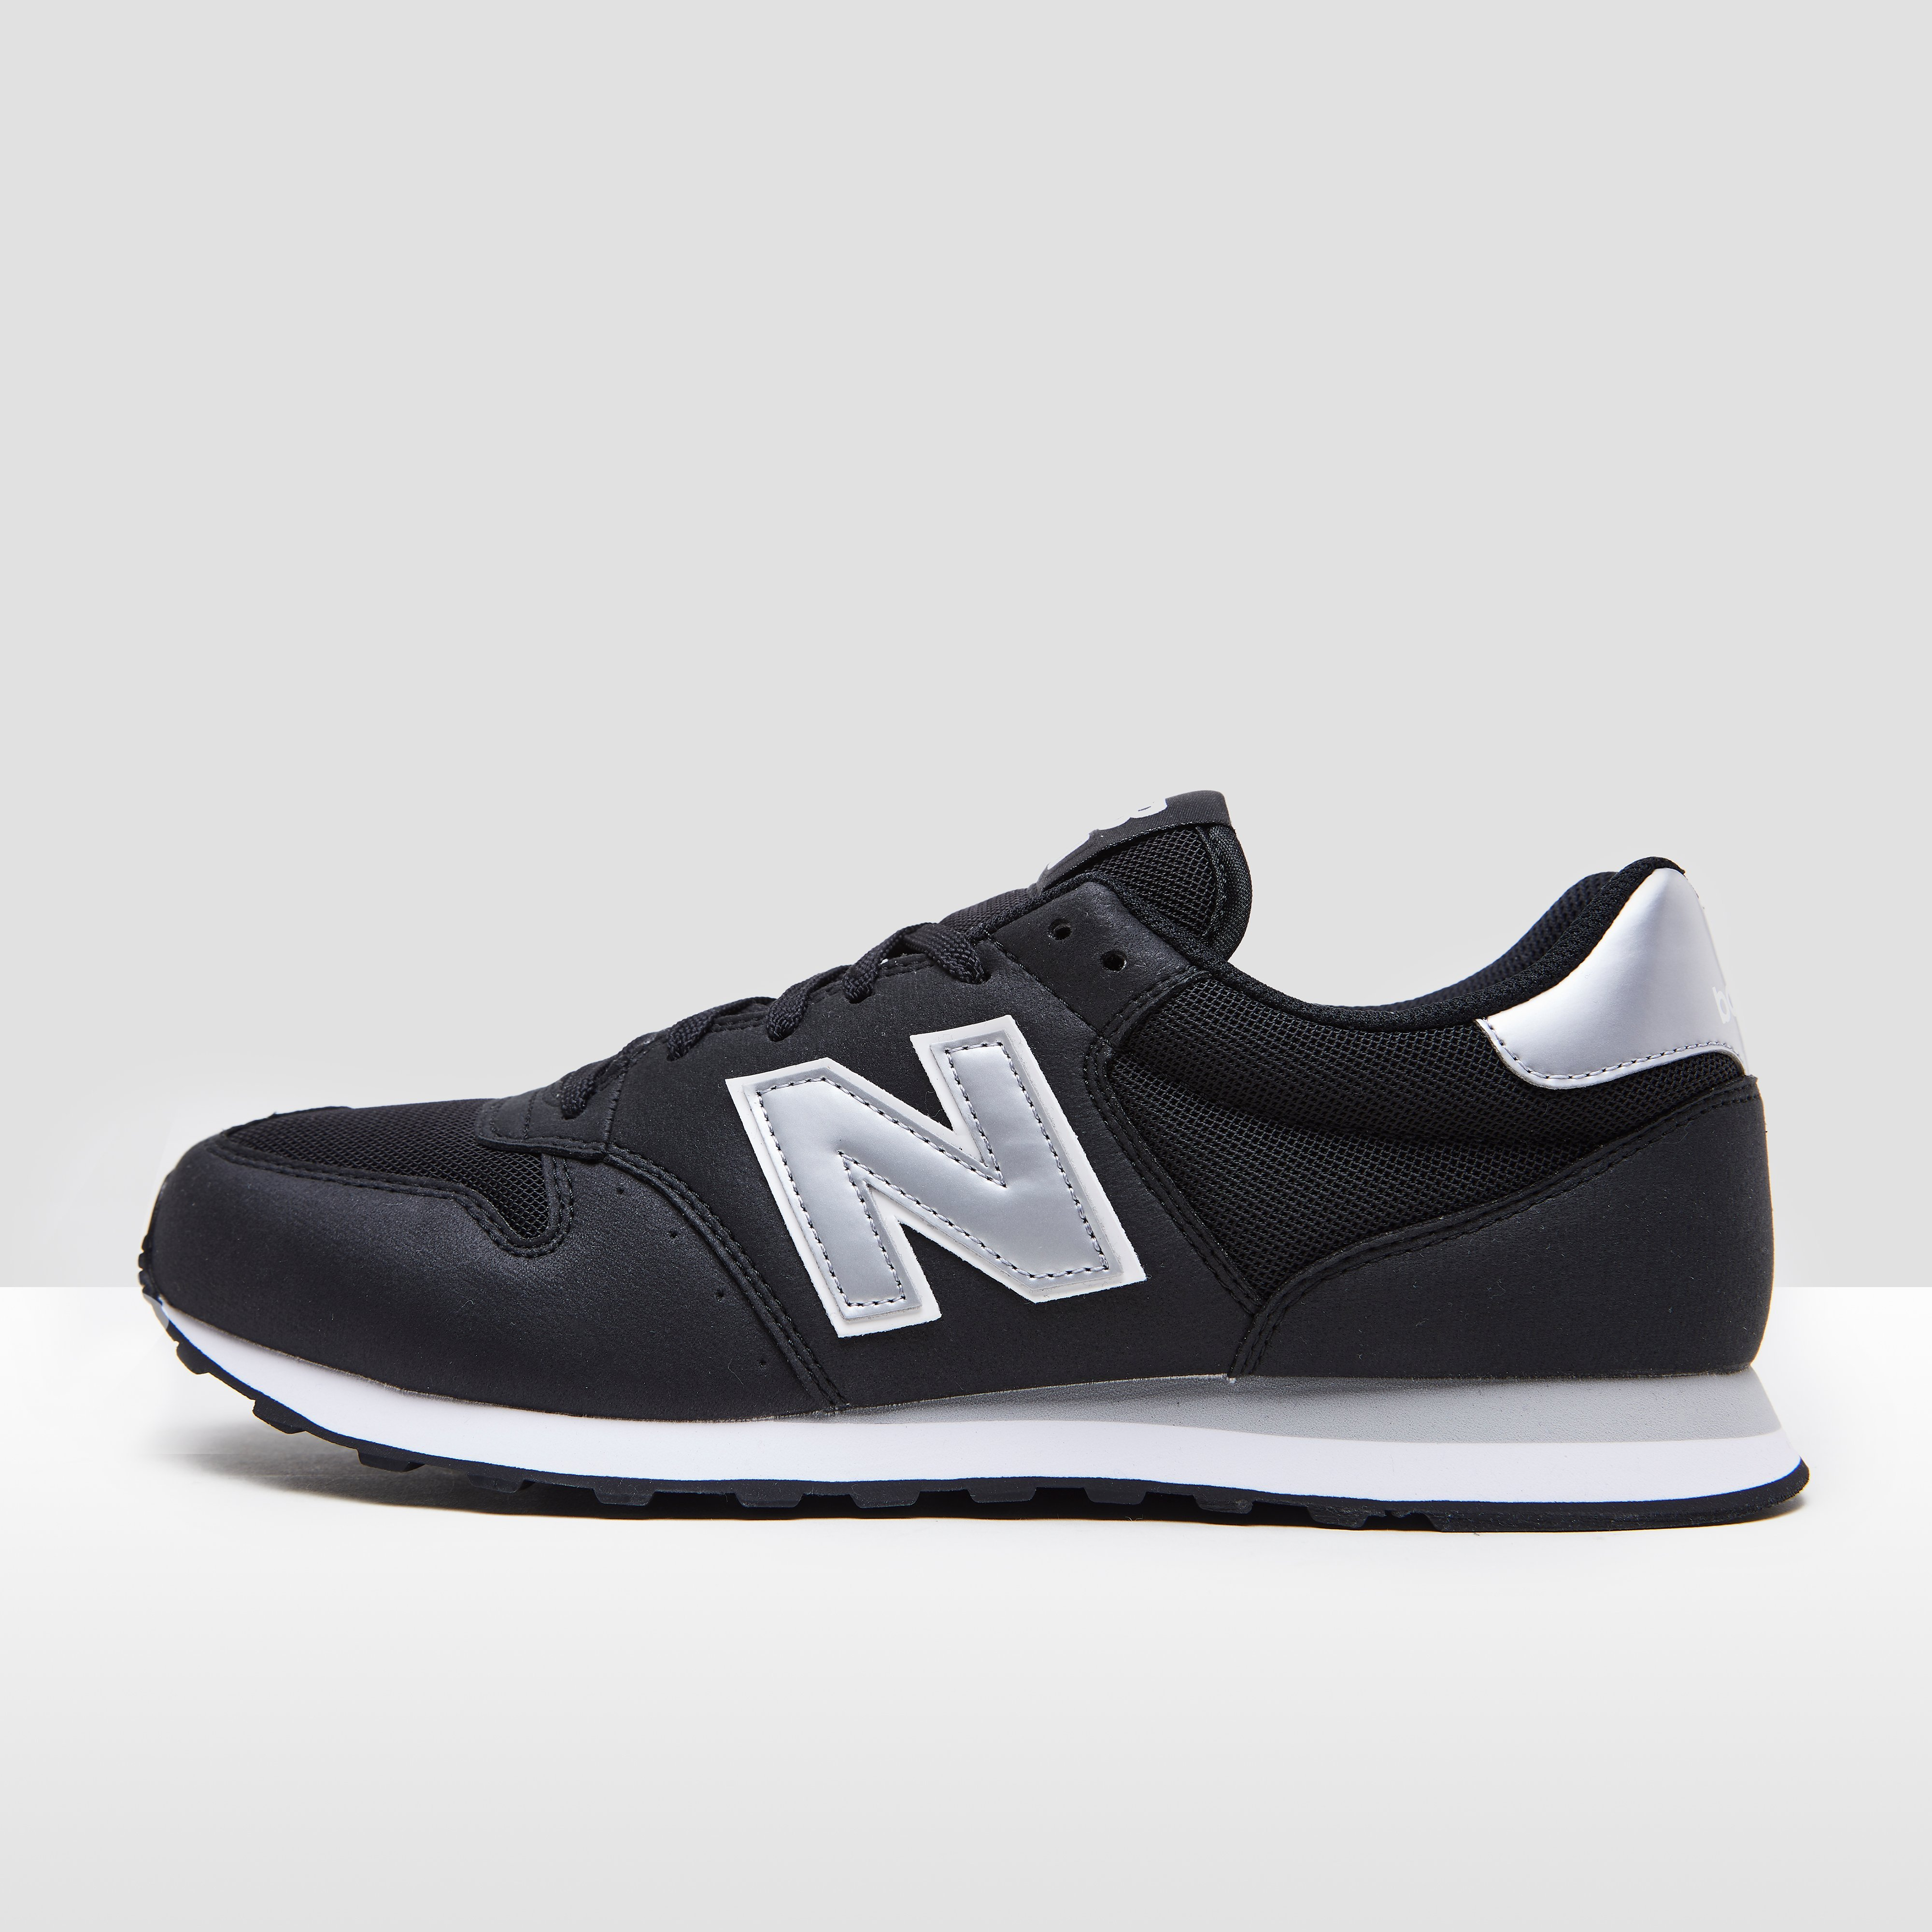 Noir Chaussures New Balance En Taille 46 Hommes so6vk